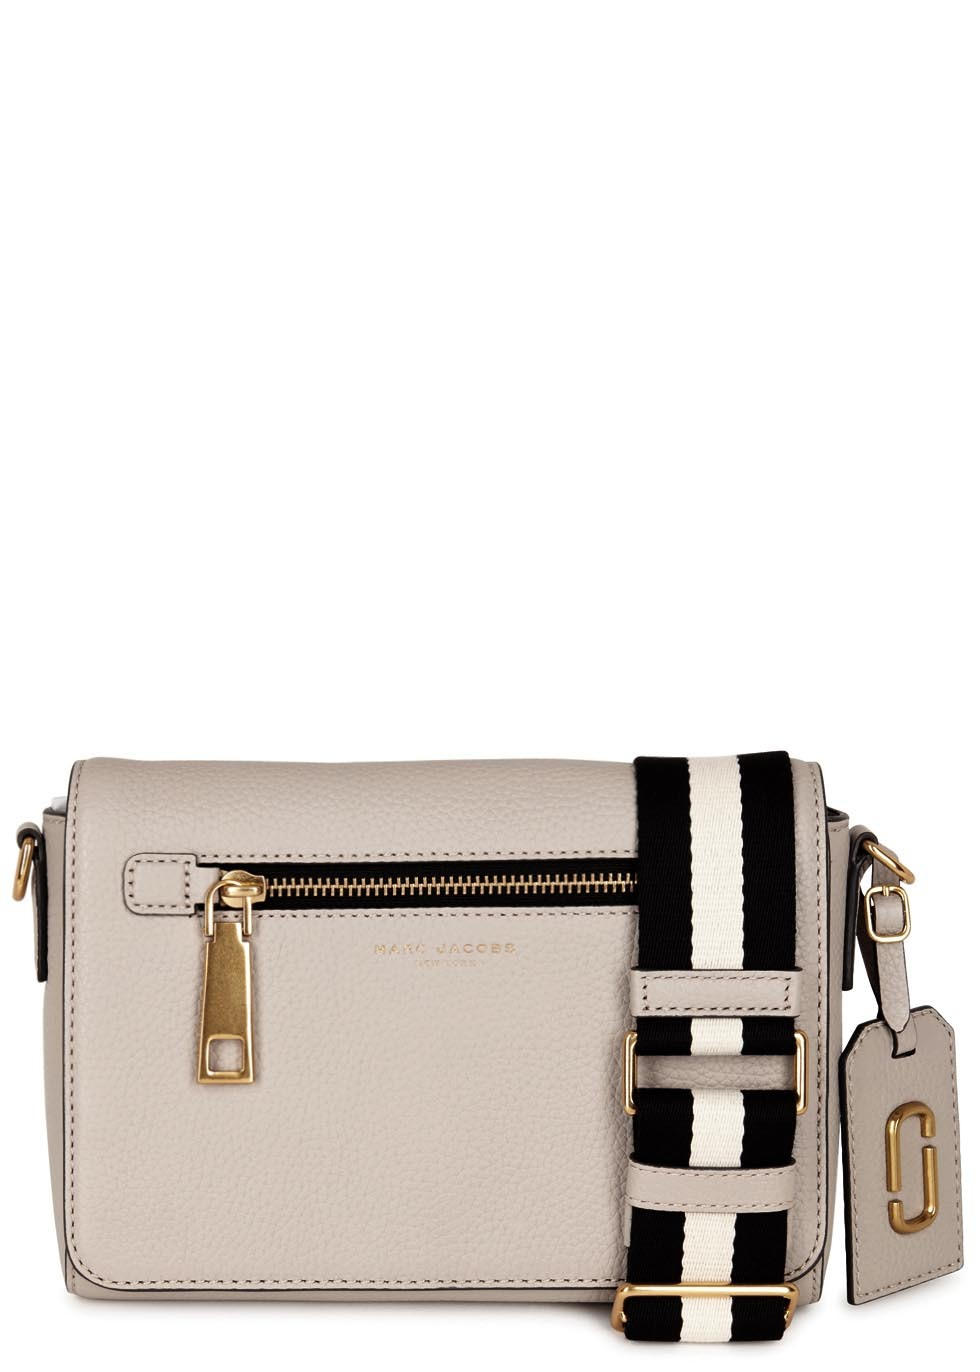 Gotham City Cream Leather Shoulder Bag - predominant colour: ivory/cream; occasions: casual, creative work; type of pattern: standard; style: shoulder; length: across body/long; size: standard; material: leather; pattern: plain; finish: plain; season: s/s 2016; wardrobe: investment